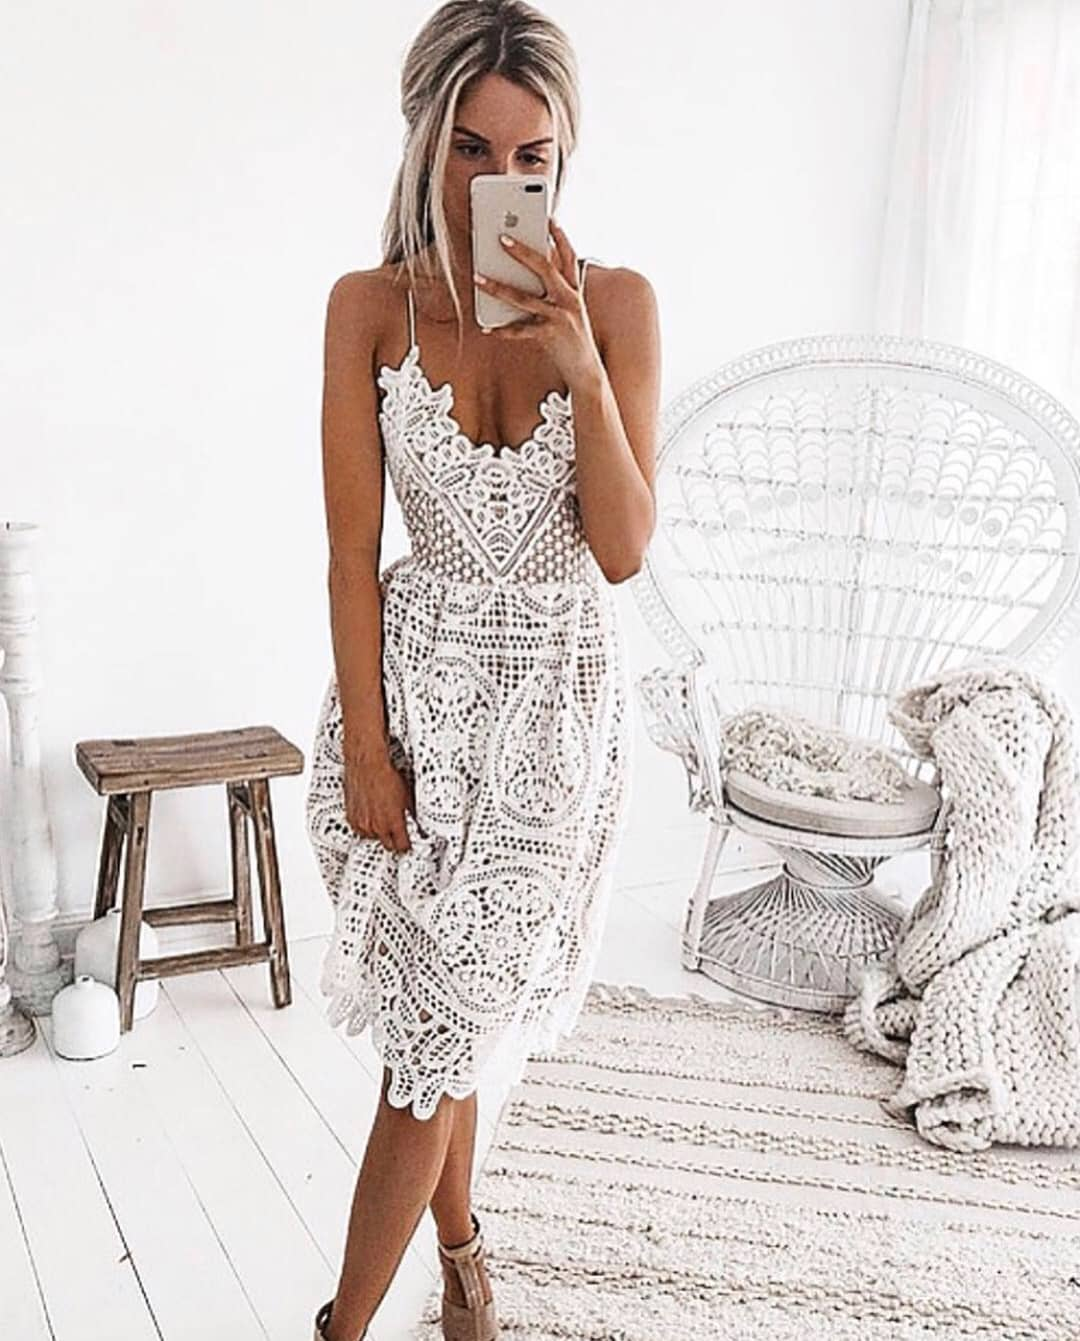 Spaghetti Strap White Crochet Dress For Summer Boho Parties 2019